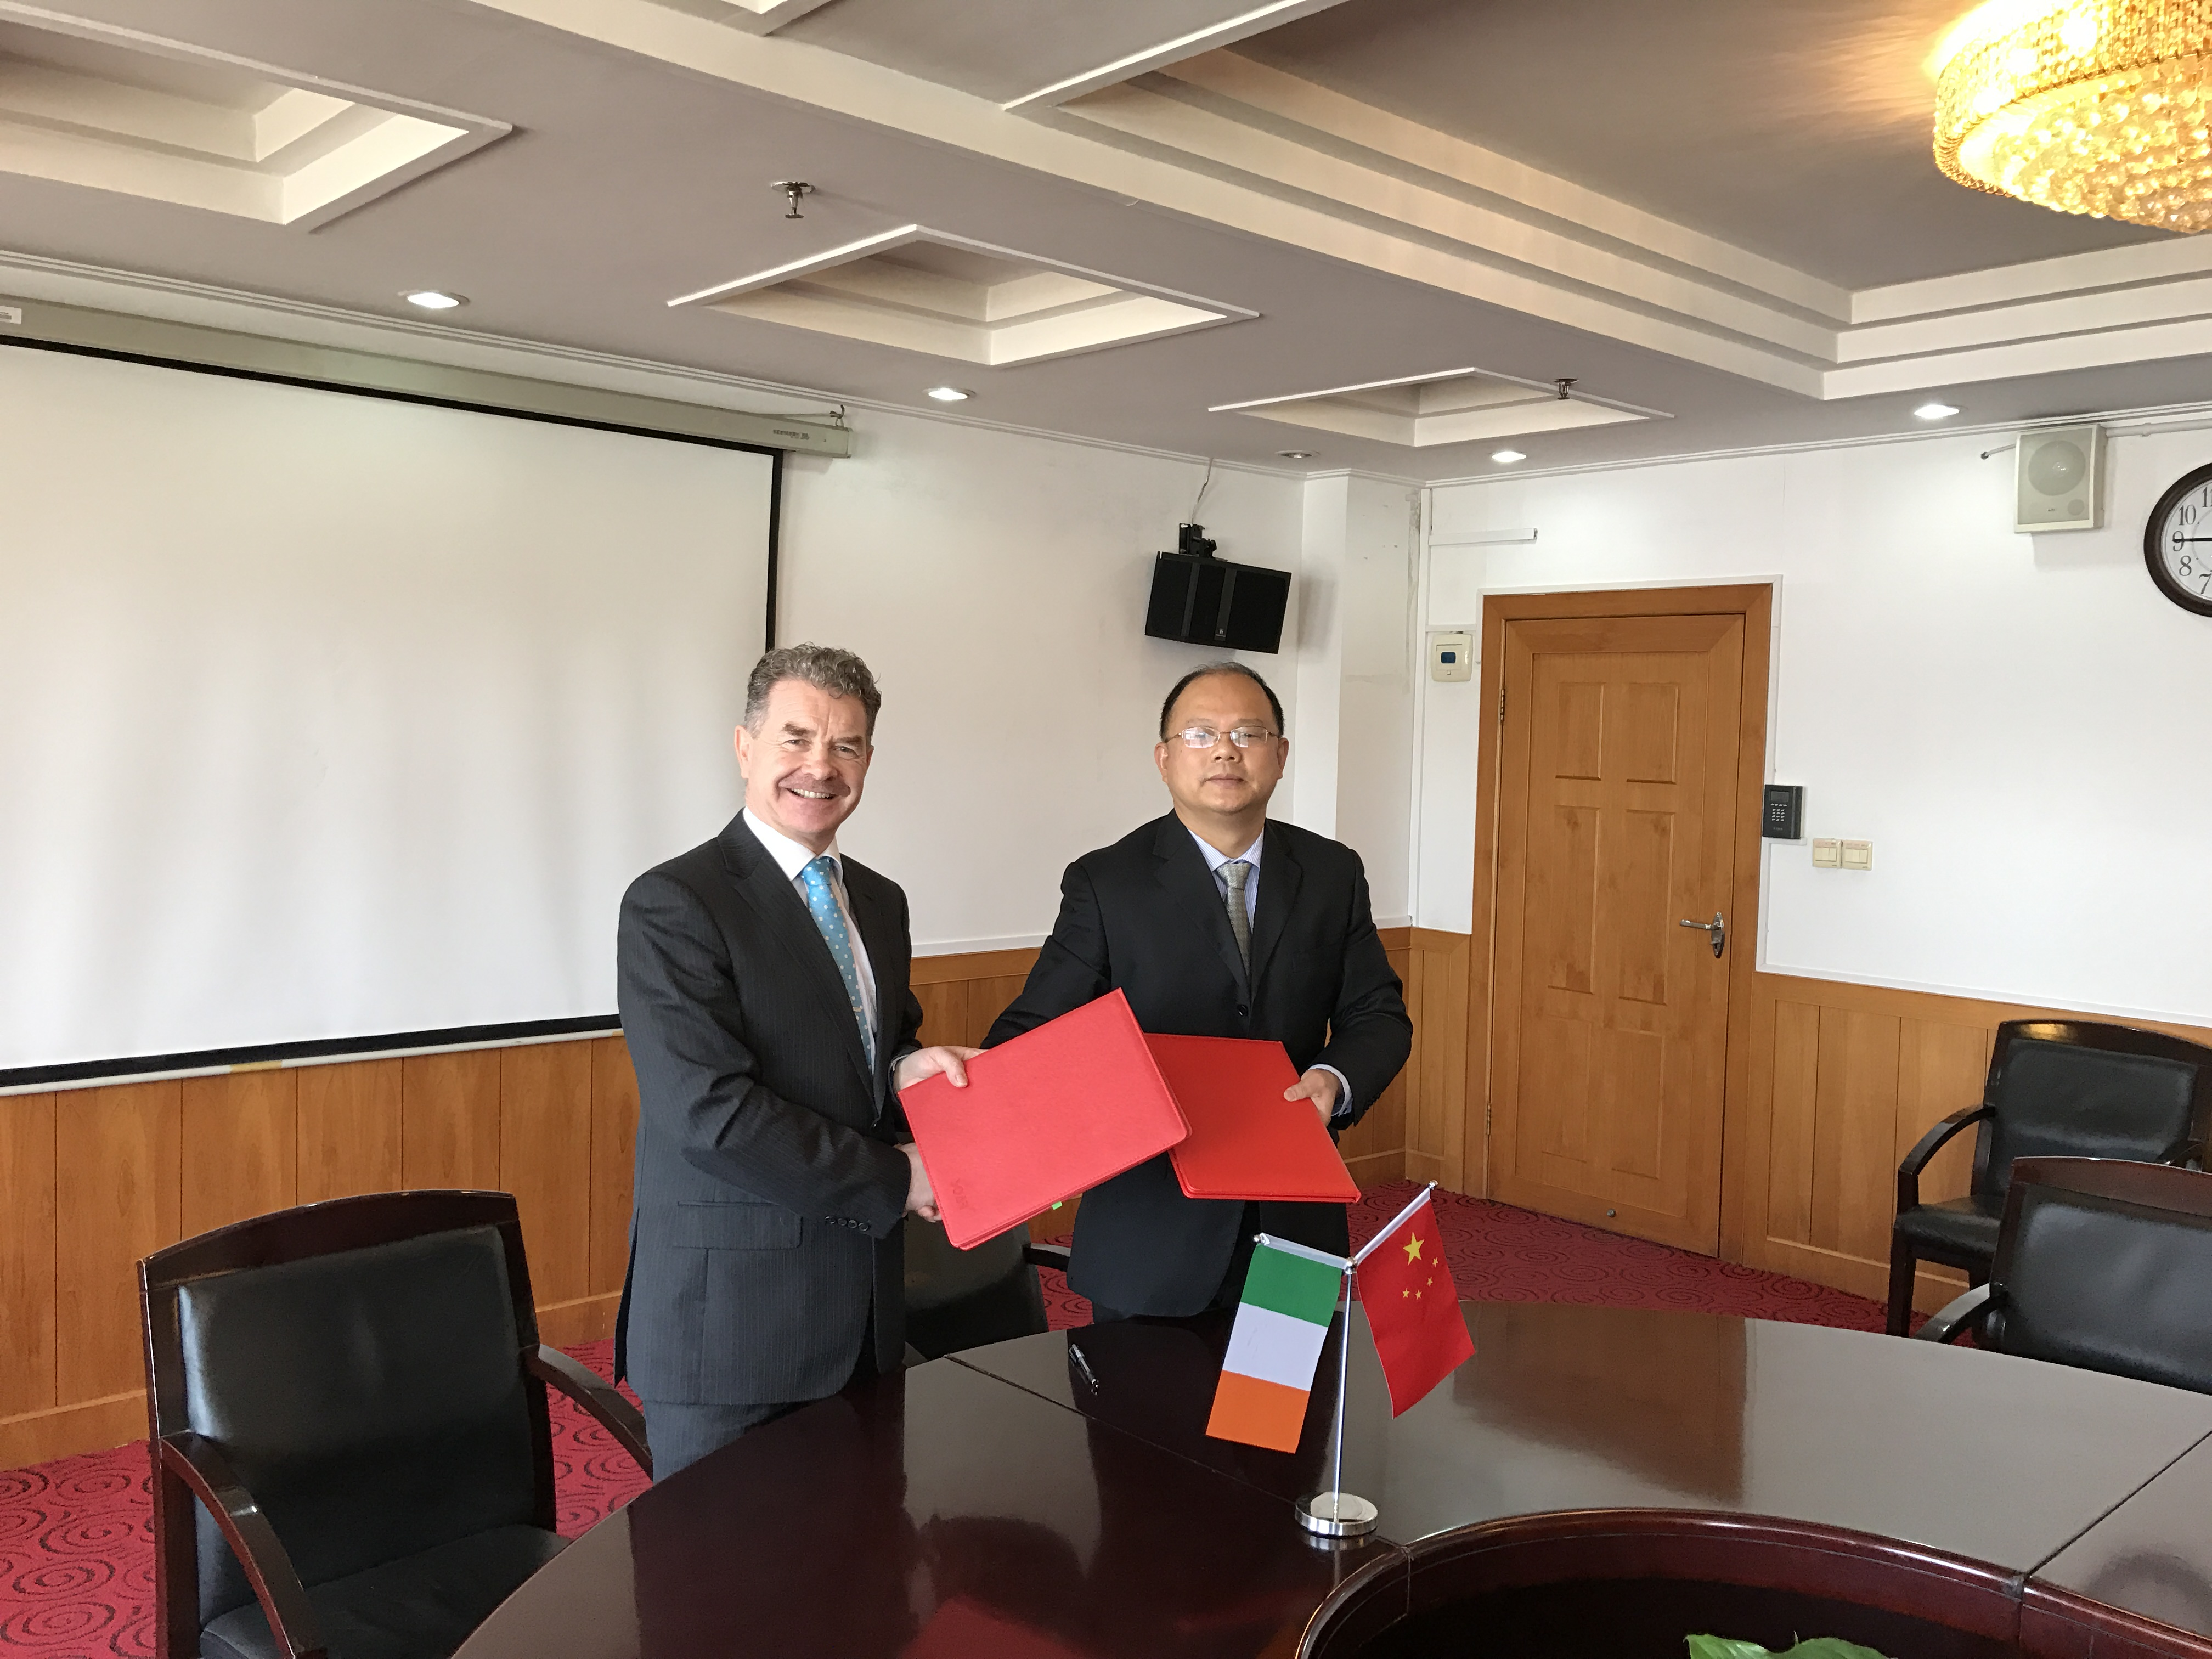 Professor Ó Catháin is pictured below alongside President Ni of Wuhan University.